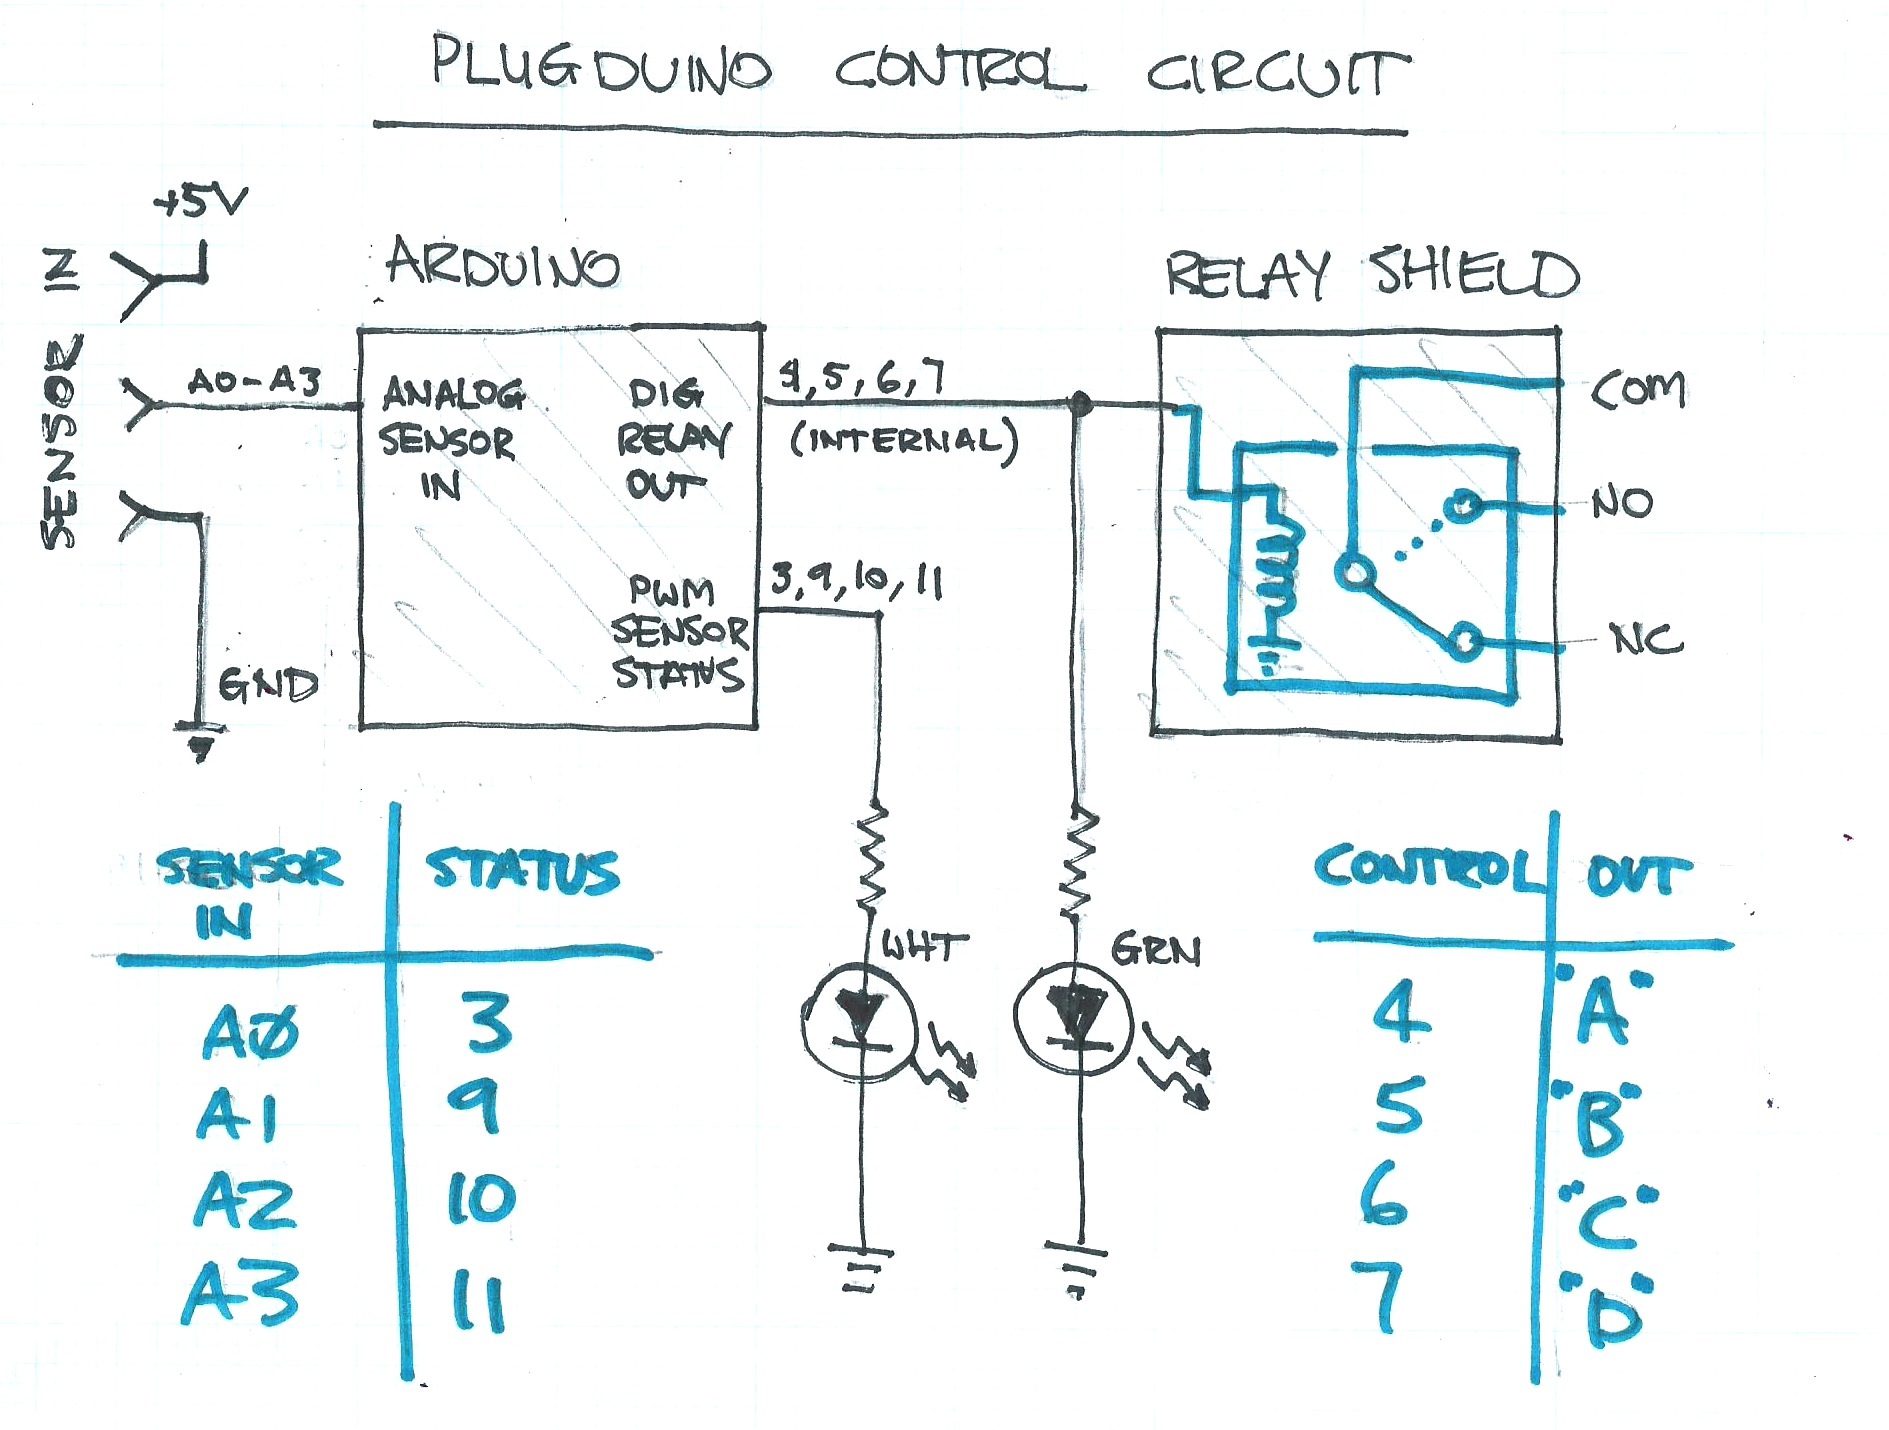 Picture of Control Circuit Schematic